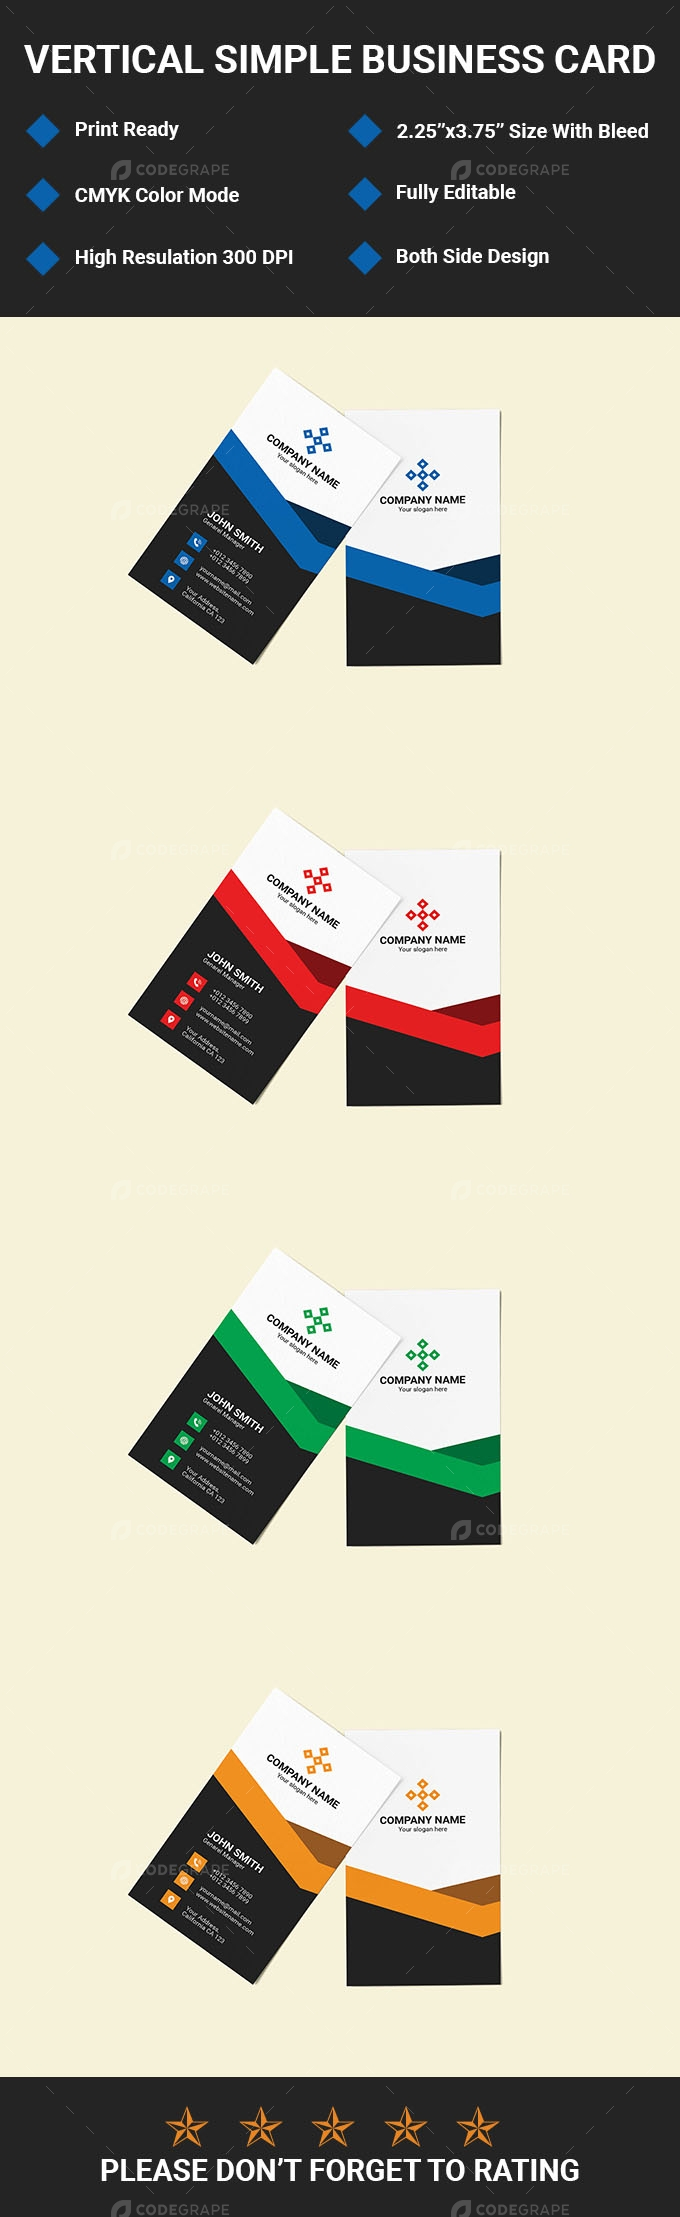 Vertical Simple Business Card